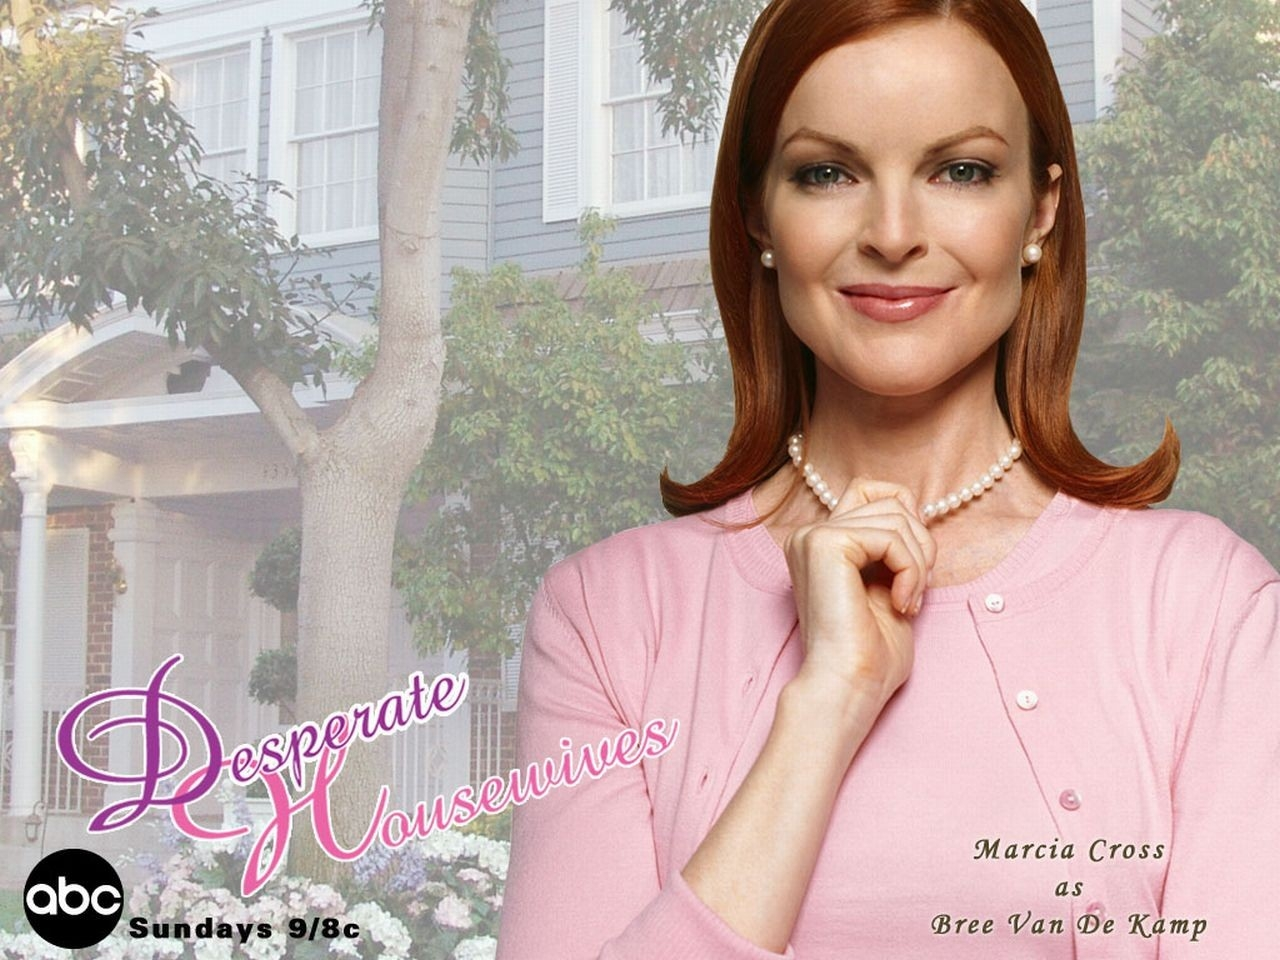 Wallpaper della serie Desperate Housewives con Bree Van De Kamp (Marcia Cross)